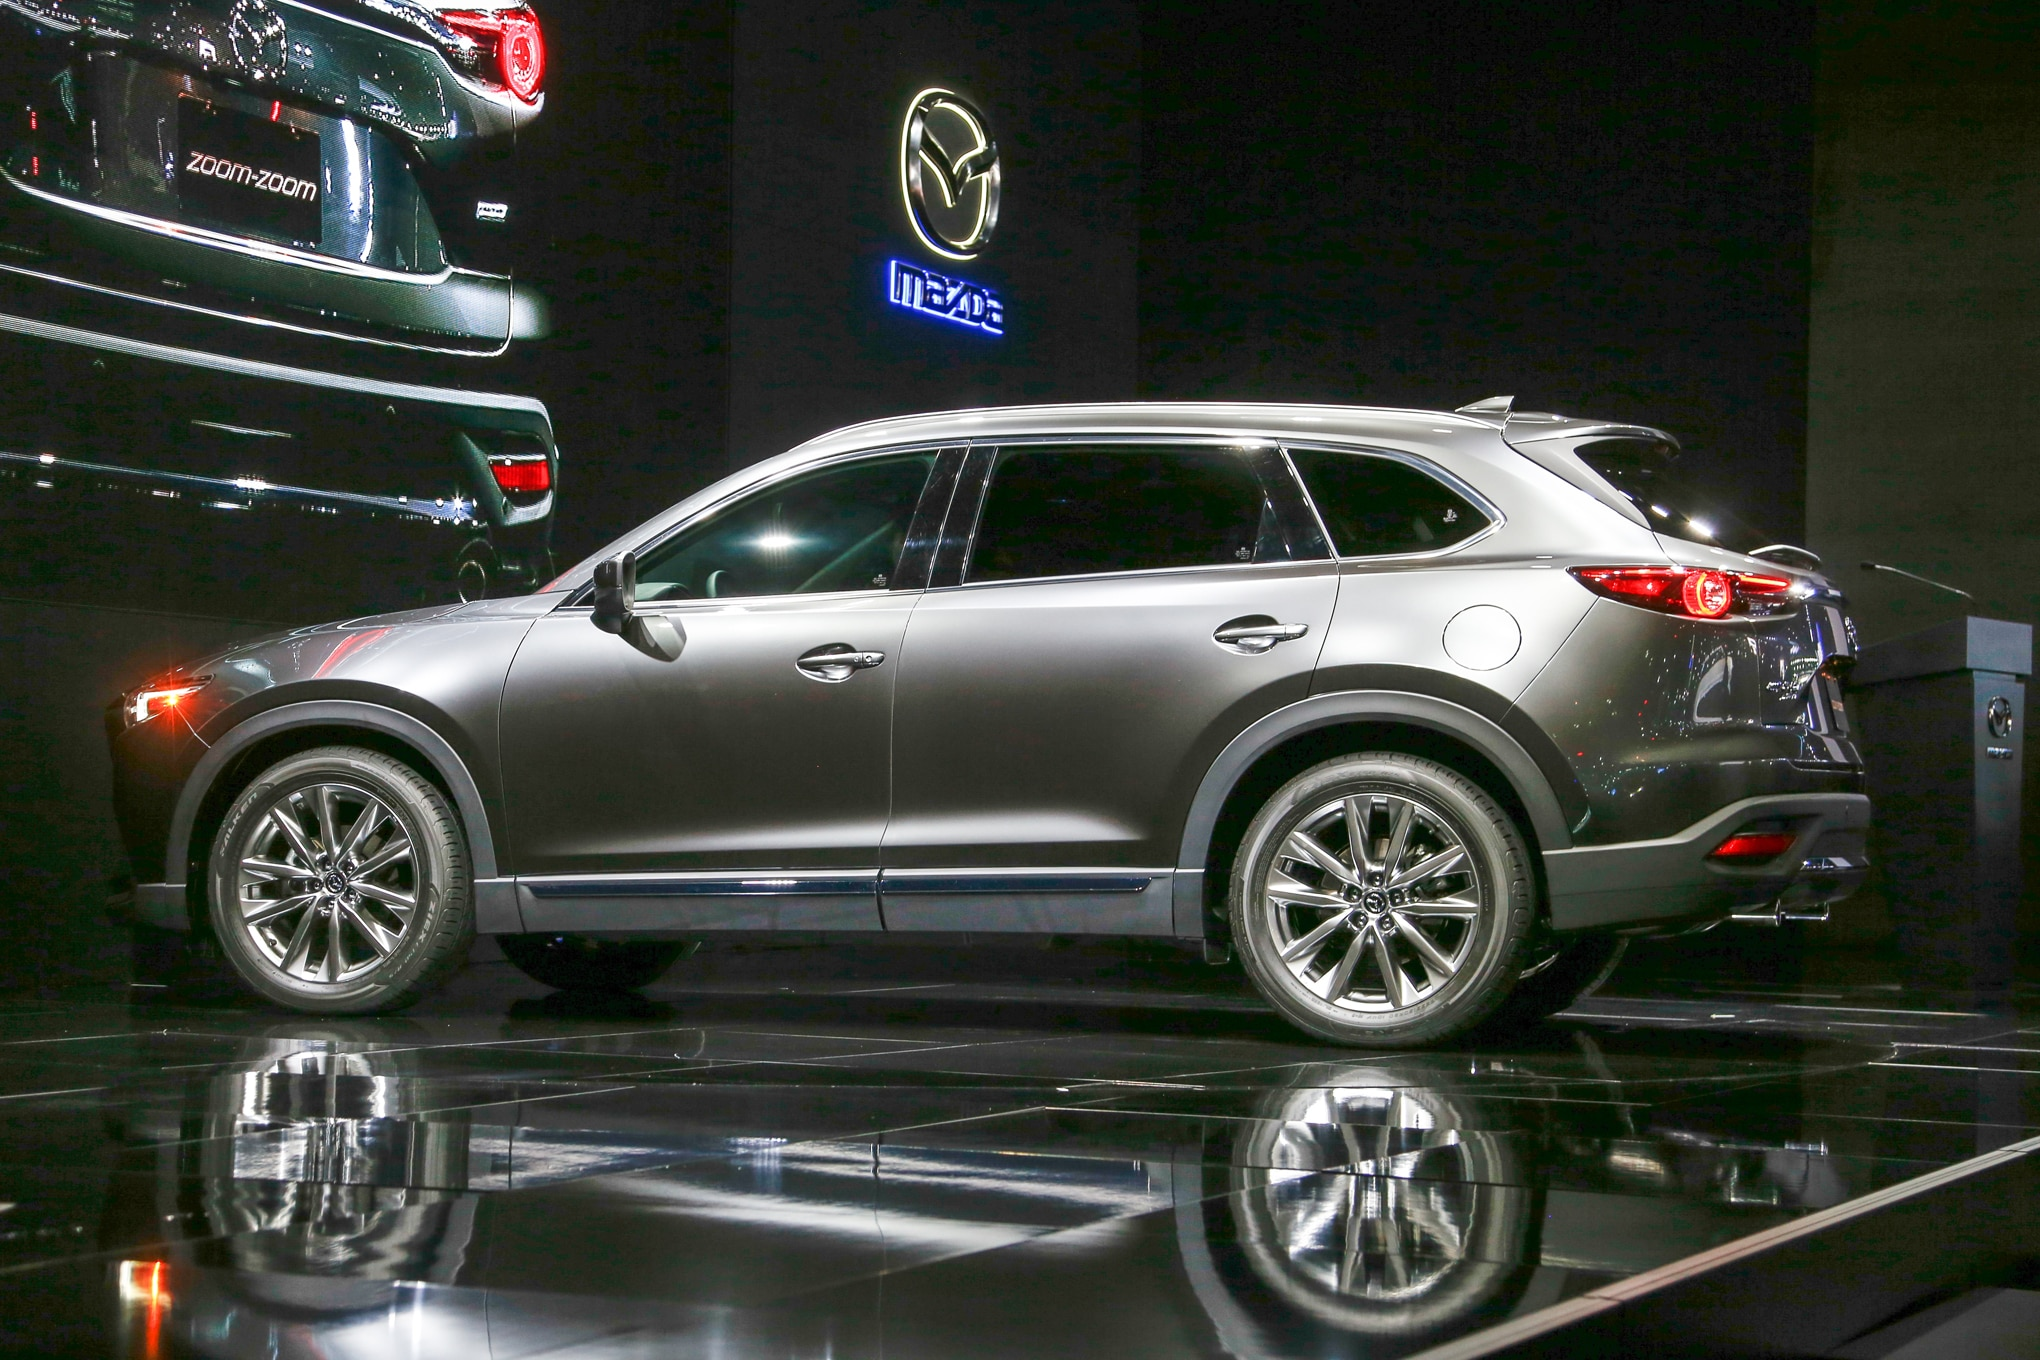 2016 mazda cx-9 prototype review